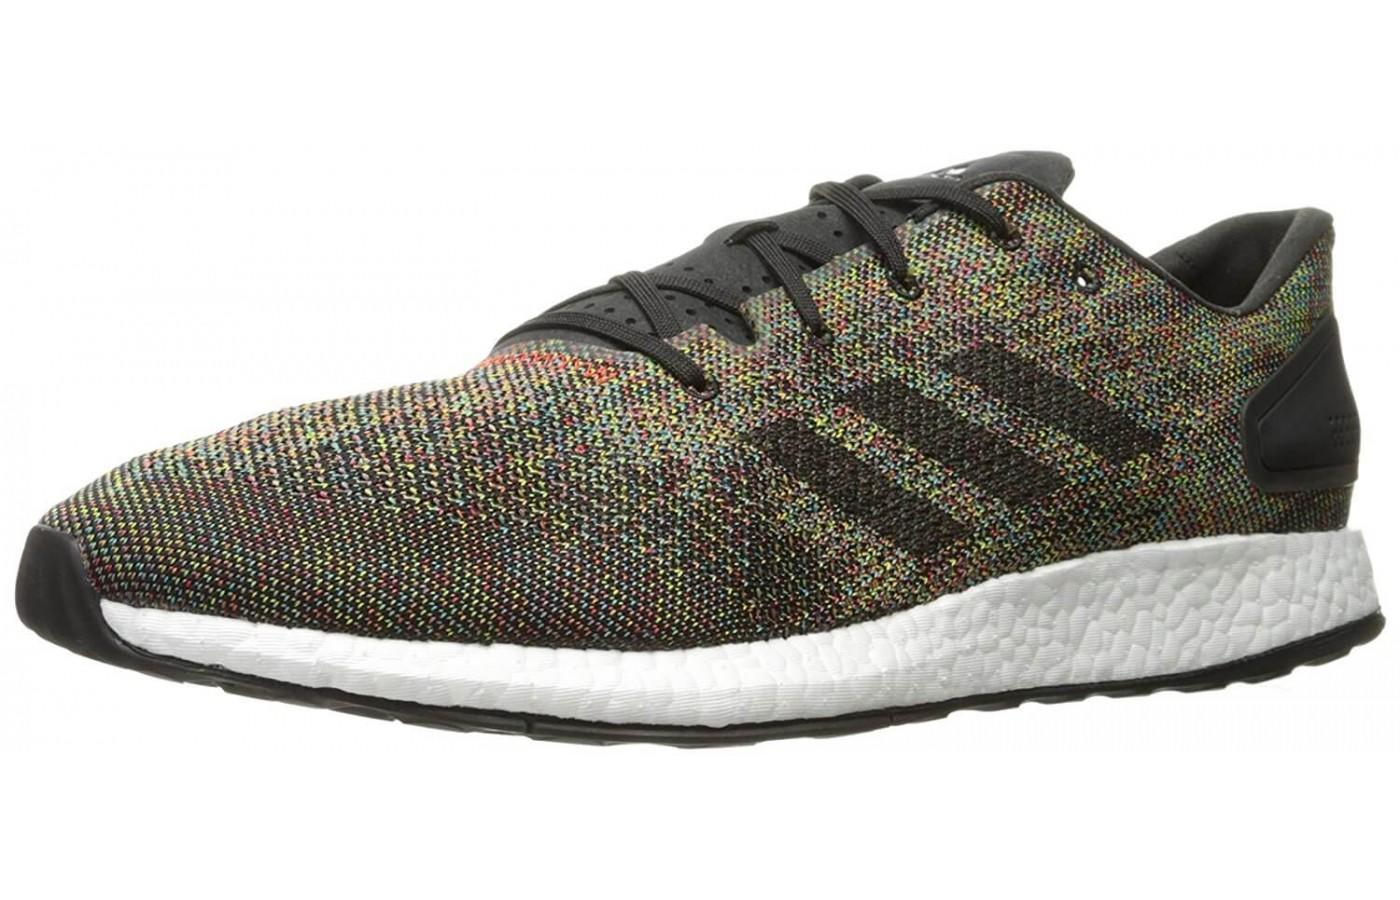 48231f56b4d Adidas PureBOOST DPR LTD - To Buy or Not in May 2019